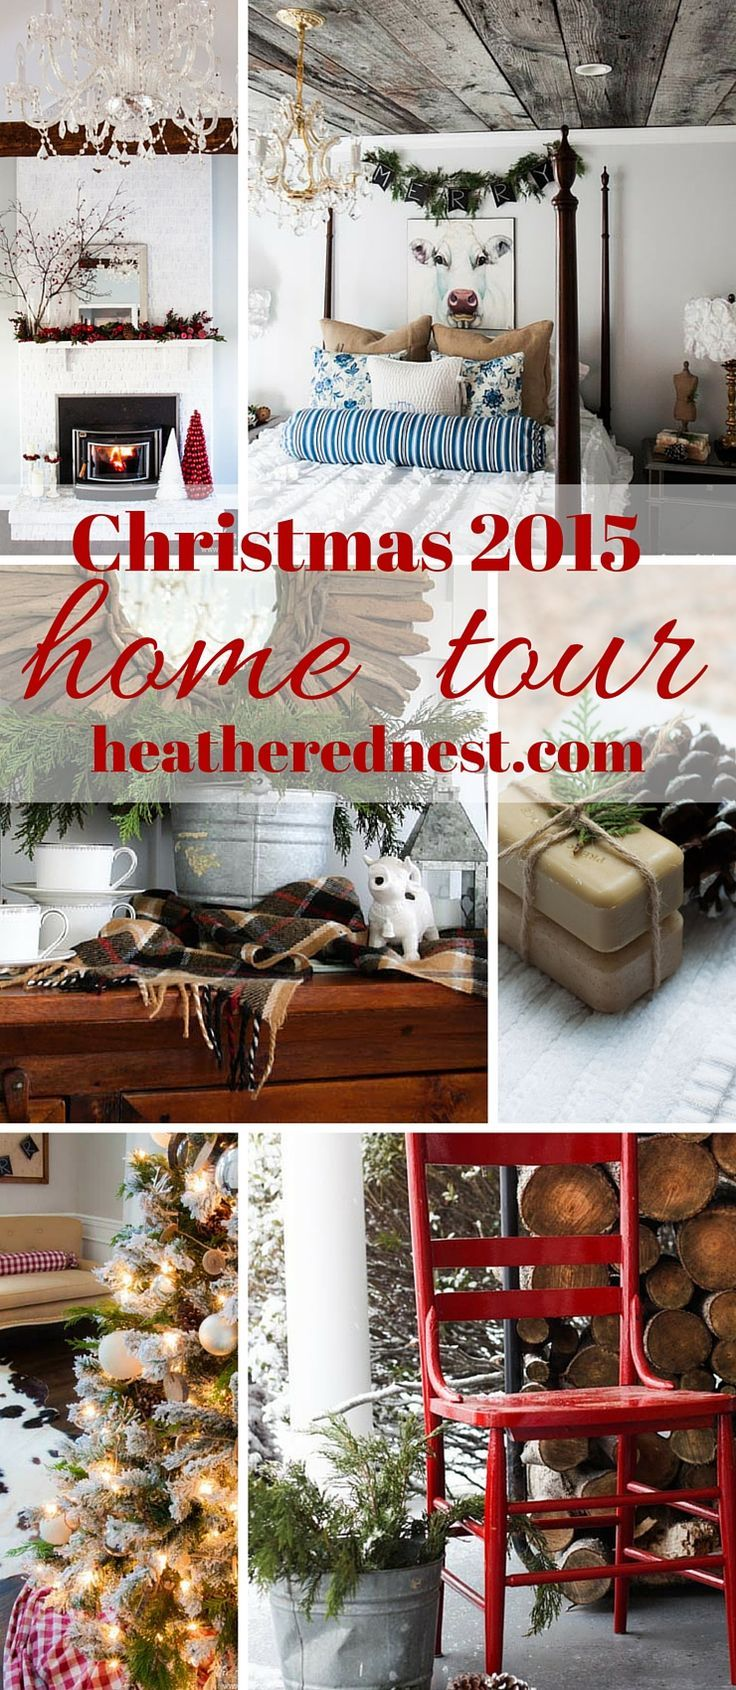 Hometalk diy christmas window decoration - Baby It S Cold Outside Heathered Nest 2015 Holiday Home Tour Part 1